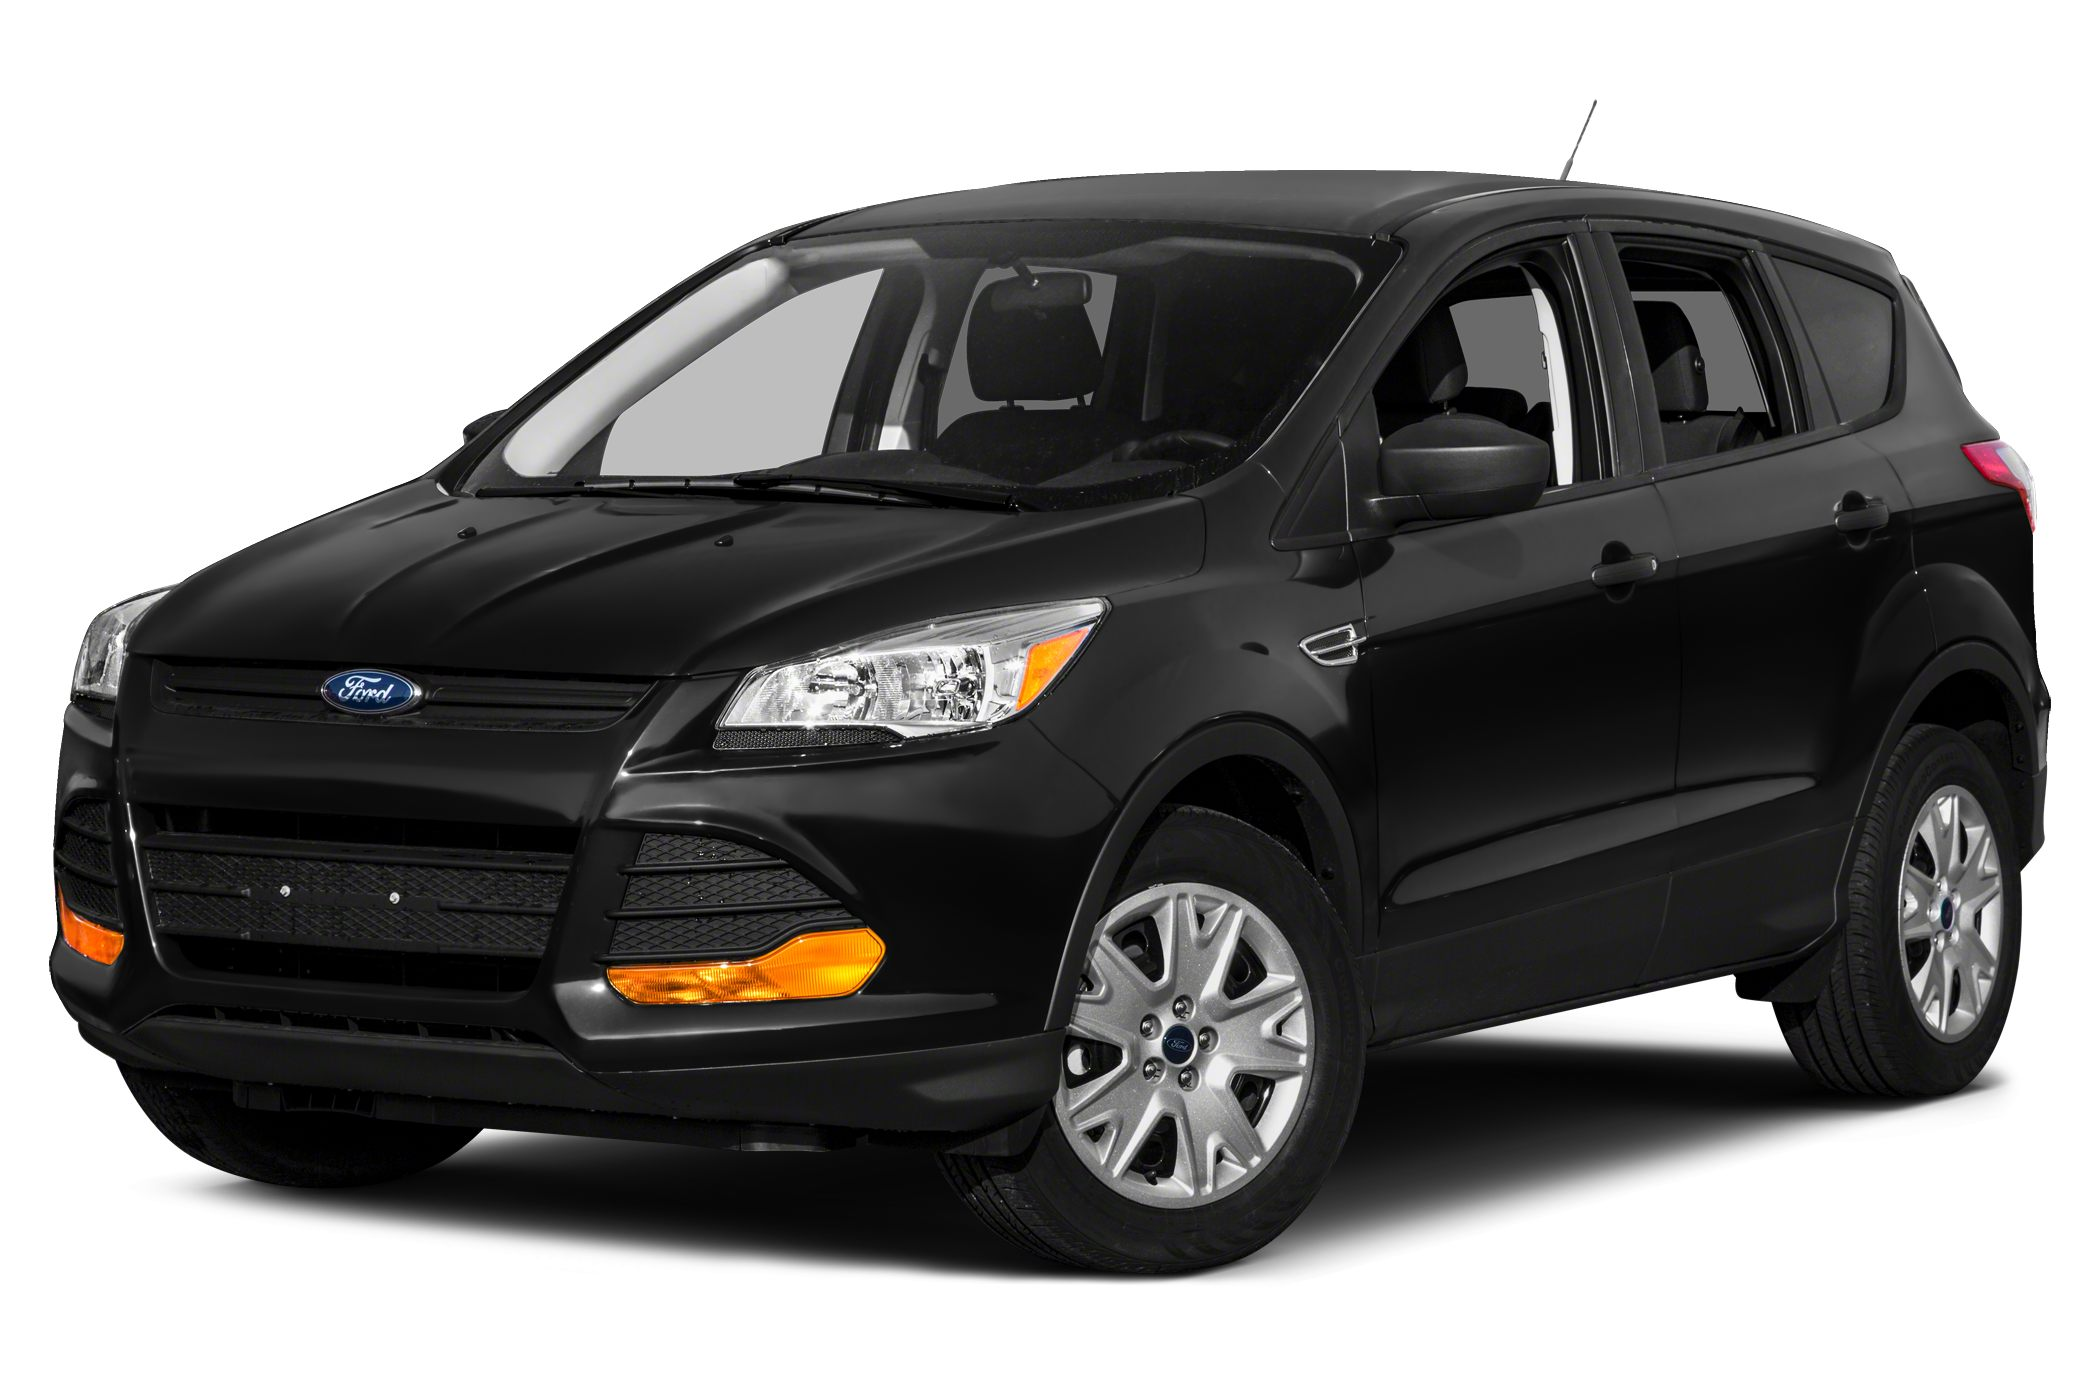 2013 Ford Escape SE SUV for sale in Lebanon for $20,800 with 19,234 miles.